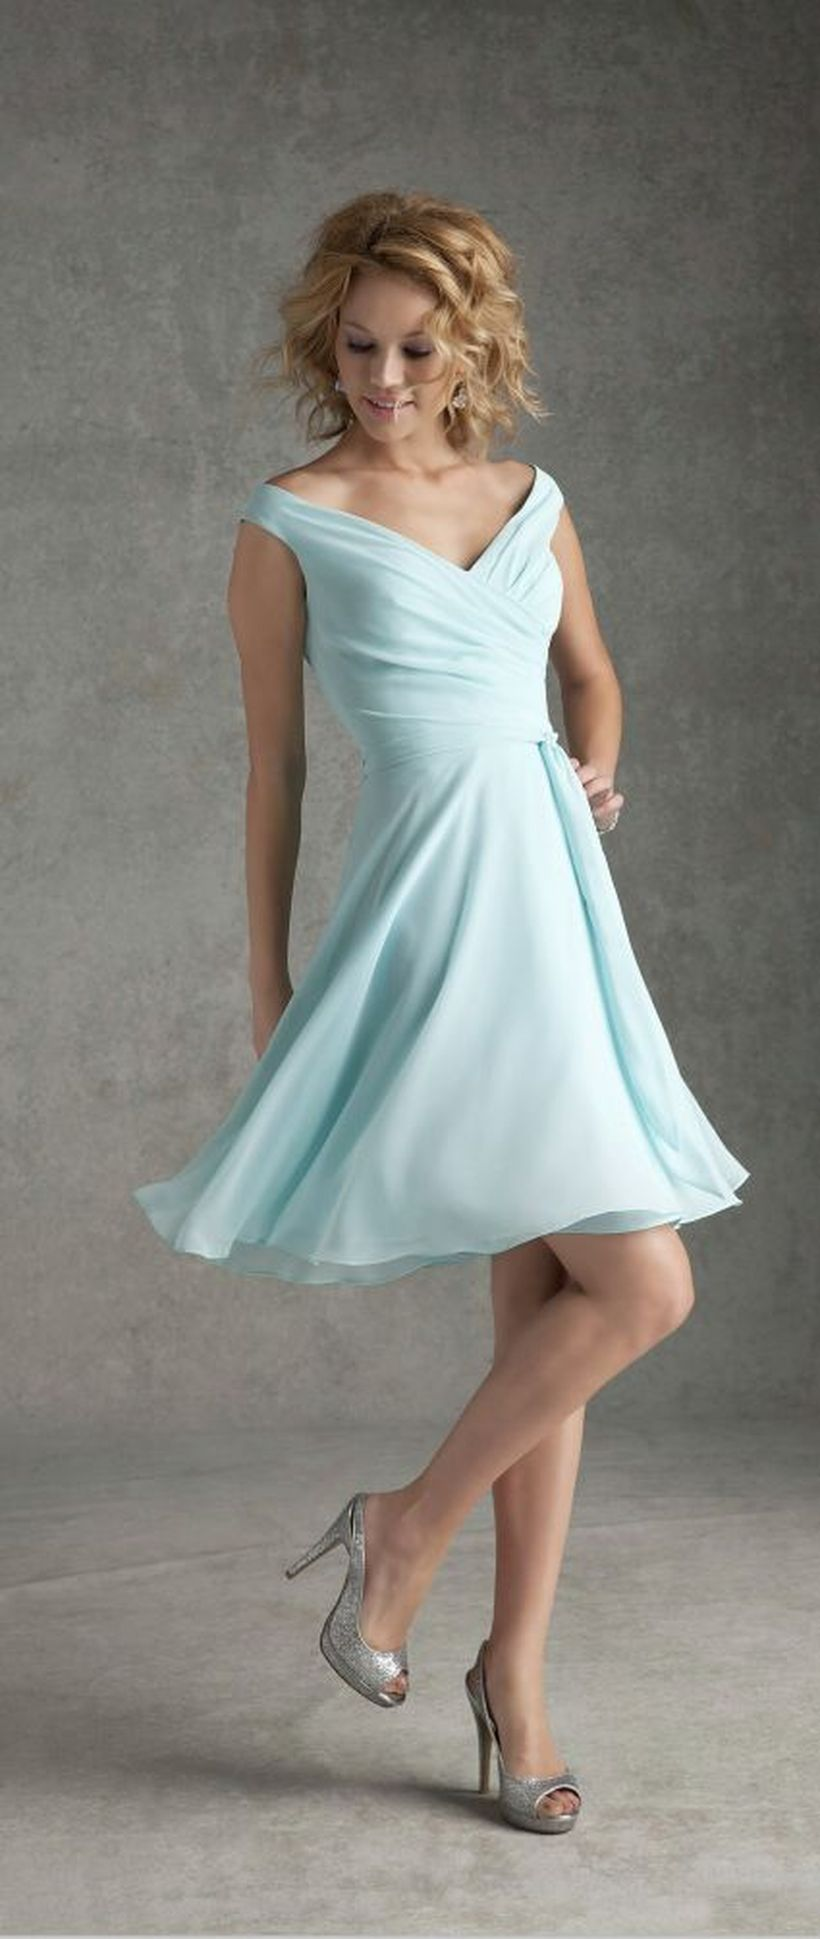 Gorgeous short bridesmaid dresses design ideas 23